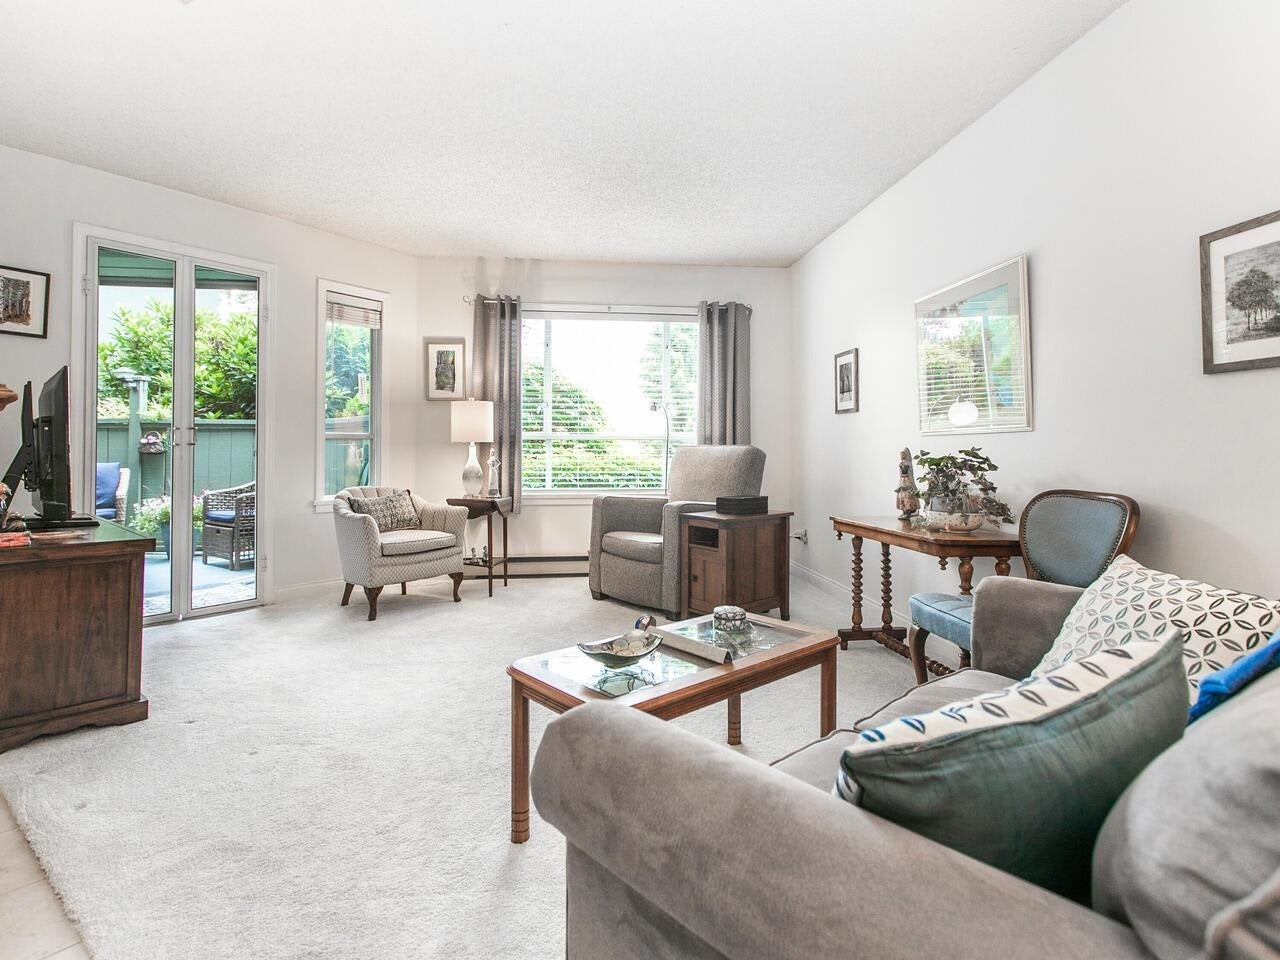 104 2800 CHESTERFIELD AVENUE - Upper Lonsdale Apartment/Condo for sale, 2 Bedrooms (R2603260) - #4